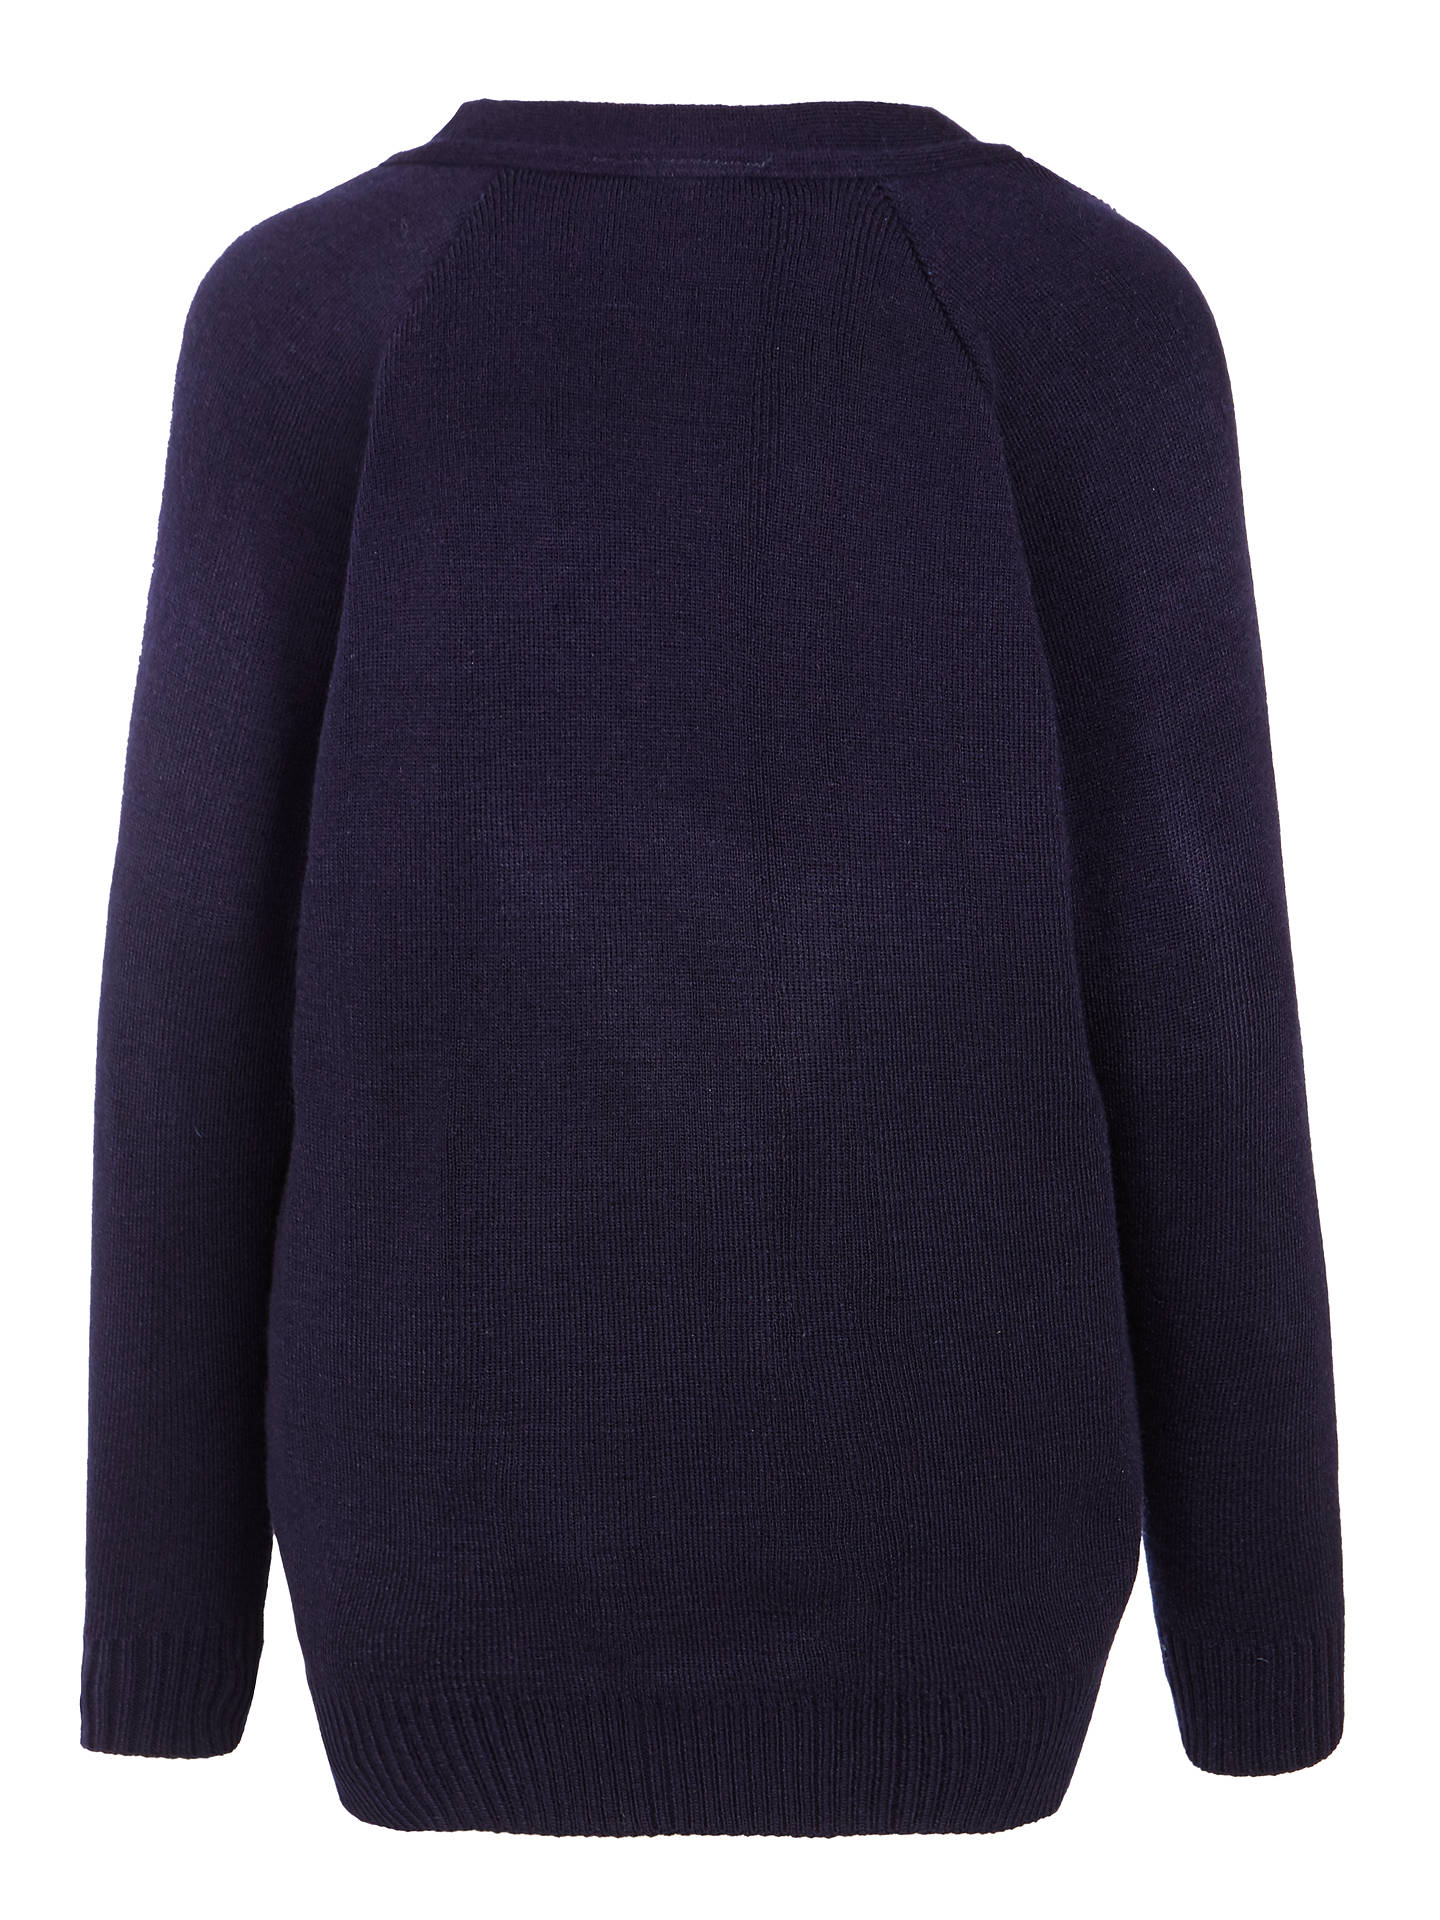 "BuyOakgrove School Cardigan, Navy, Chest 24"" Online at johnlewis.com"